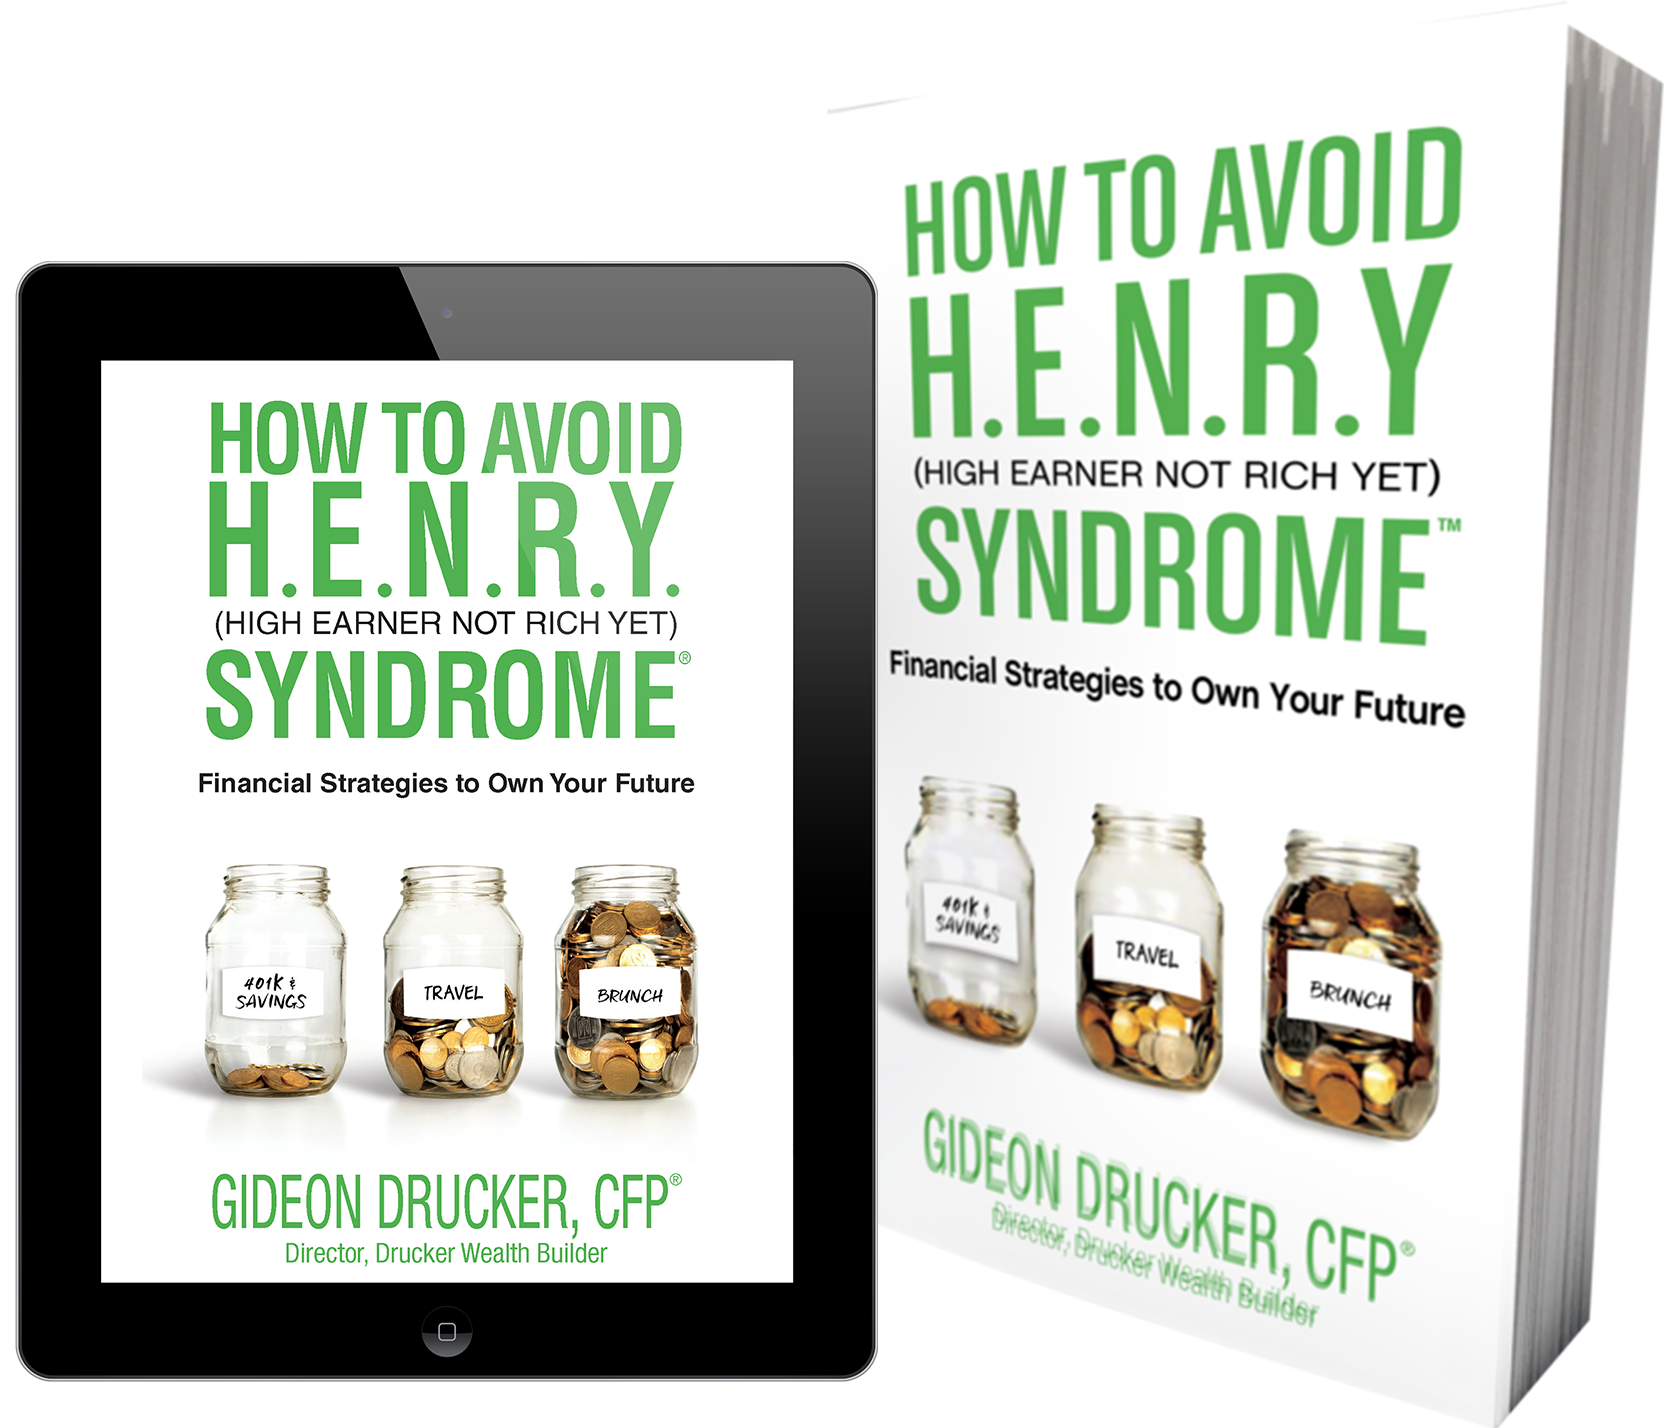 How To Avoid HENRY Syndrome, Author Gideon Drucker CFP